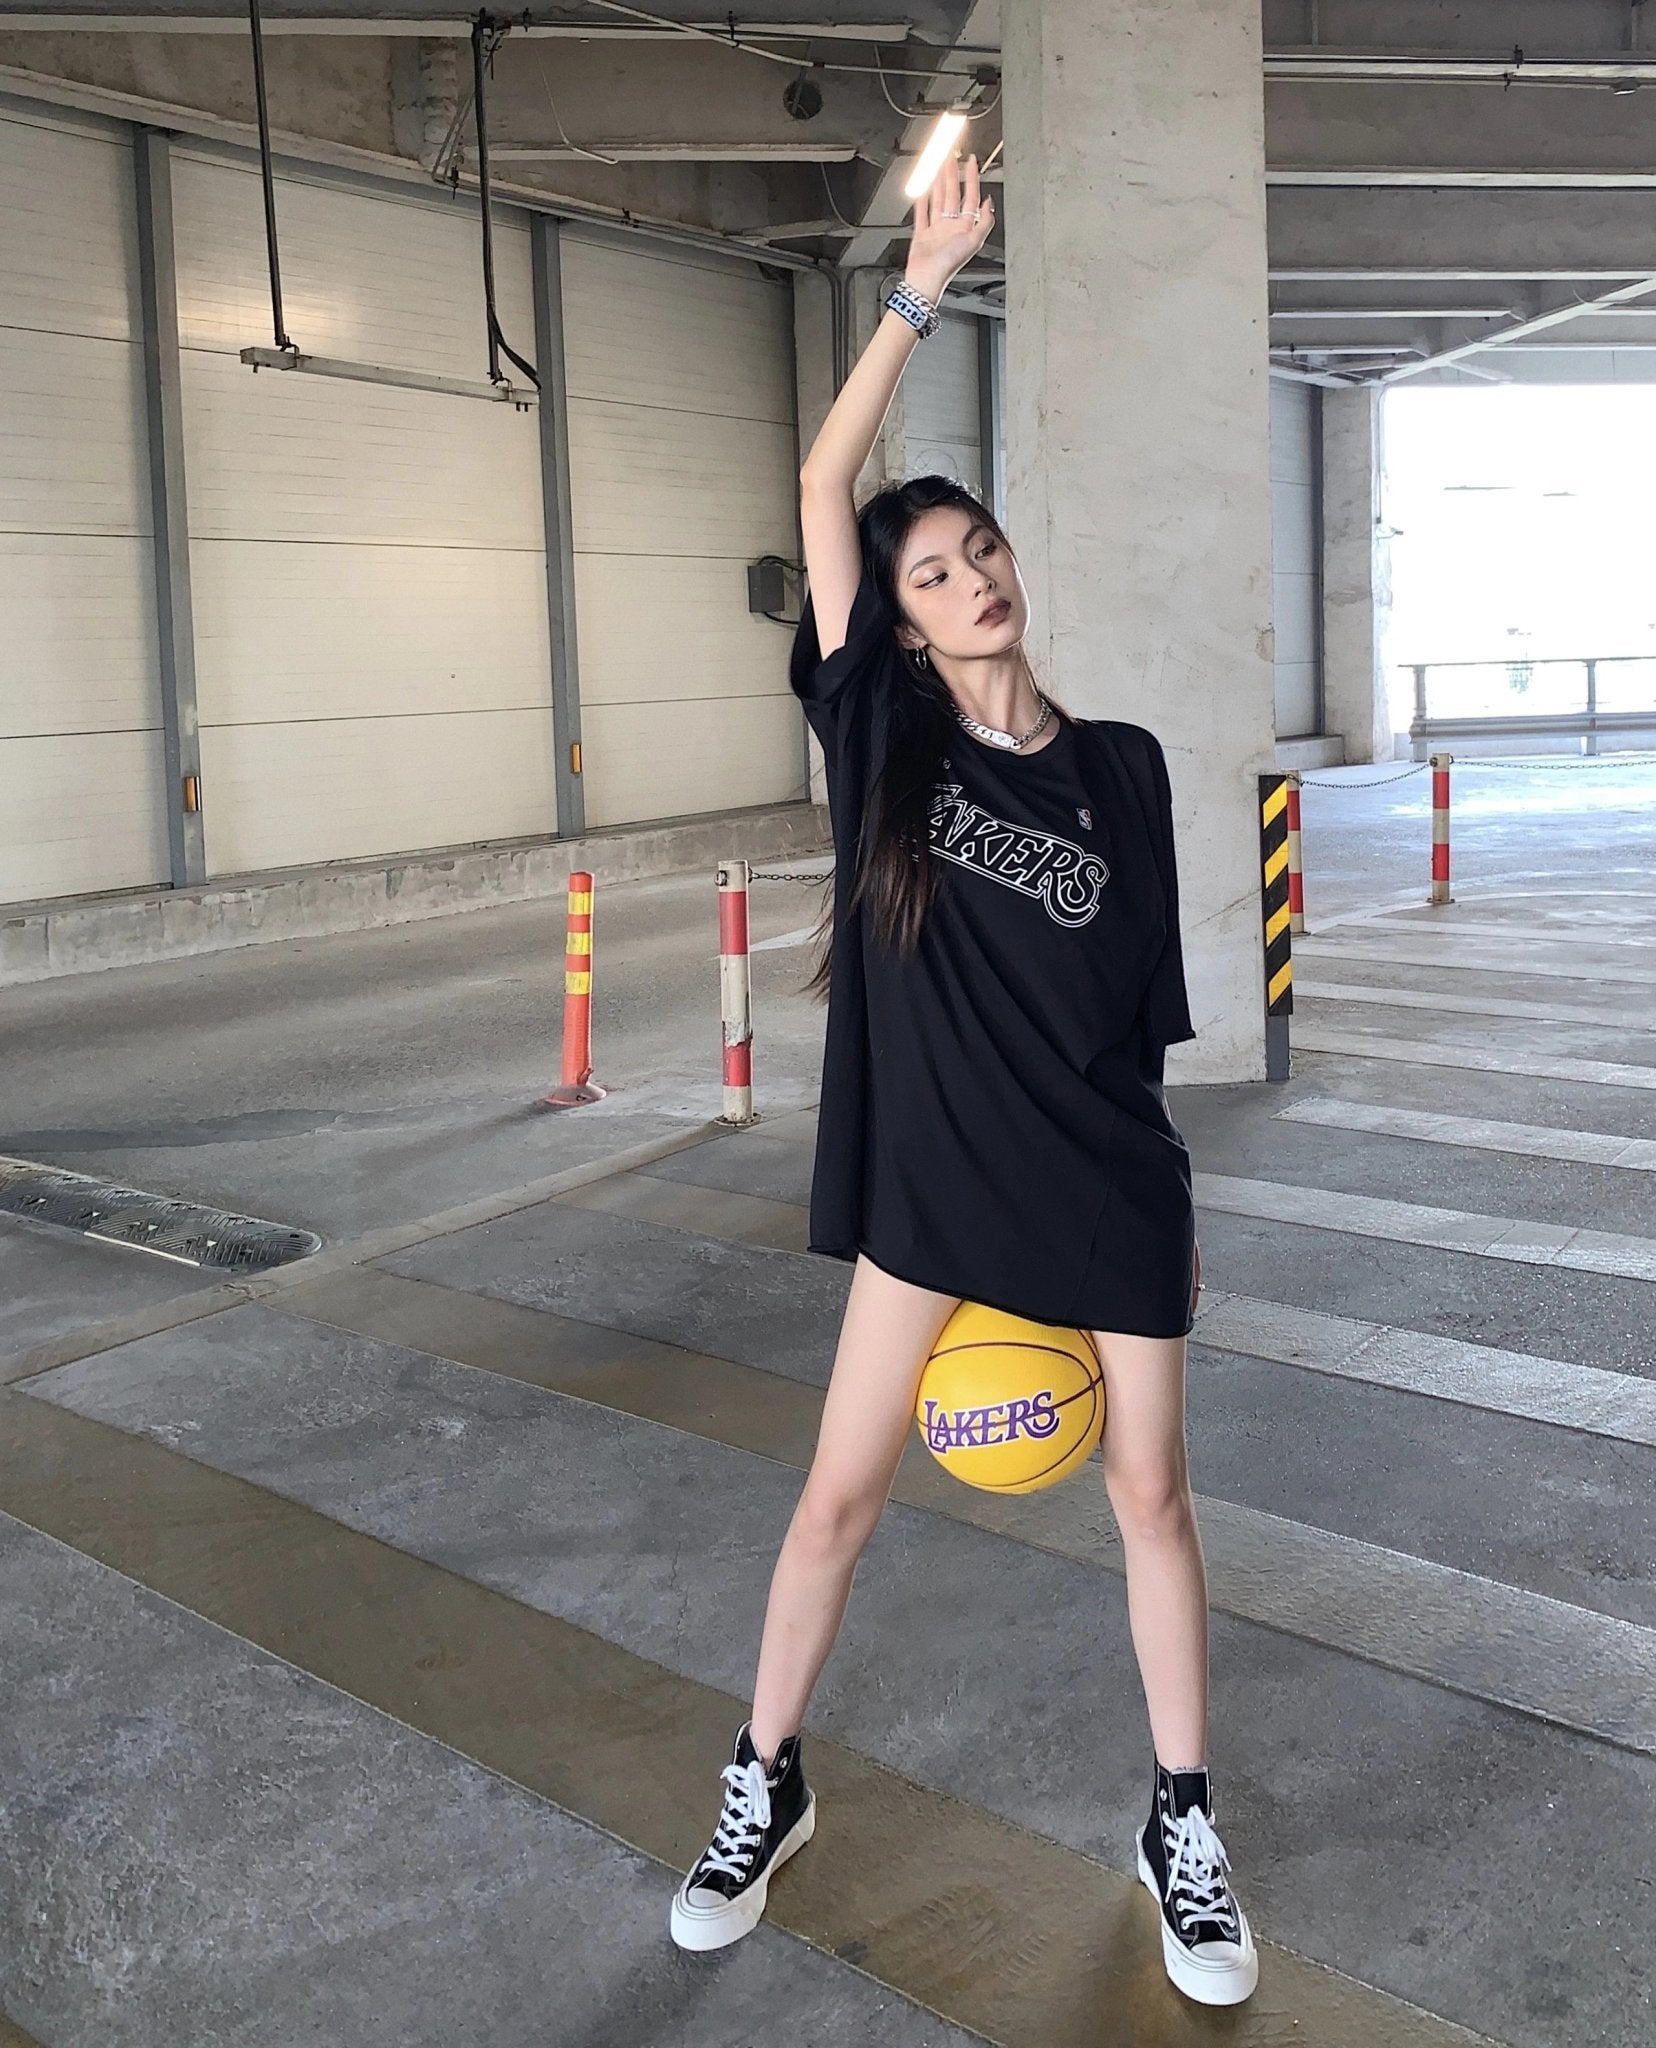 SMFK Los Angeles Lakers Oversized Tee | MADA IN CHINA